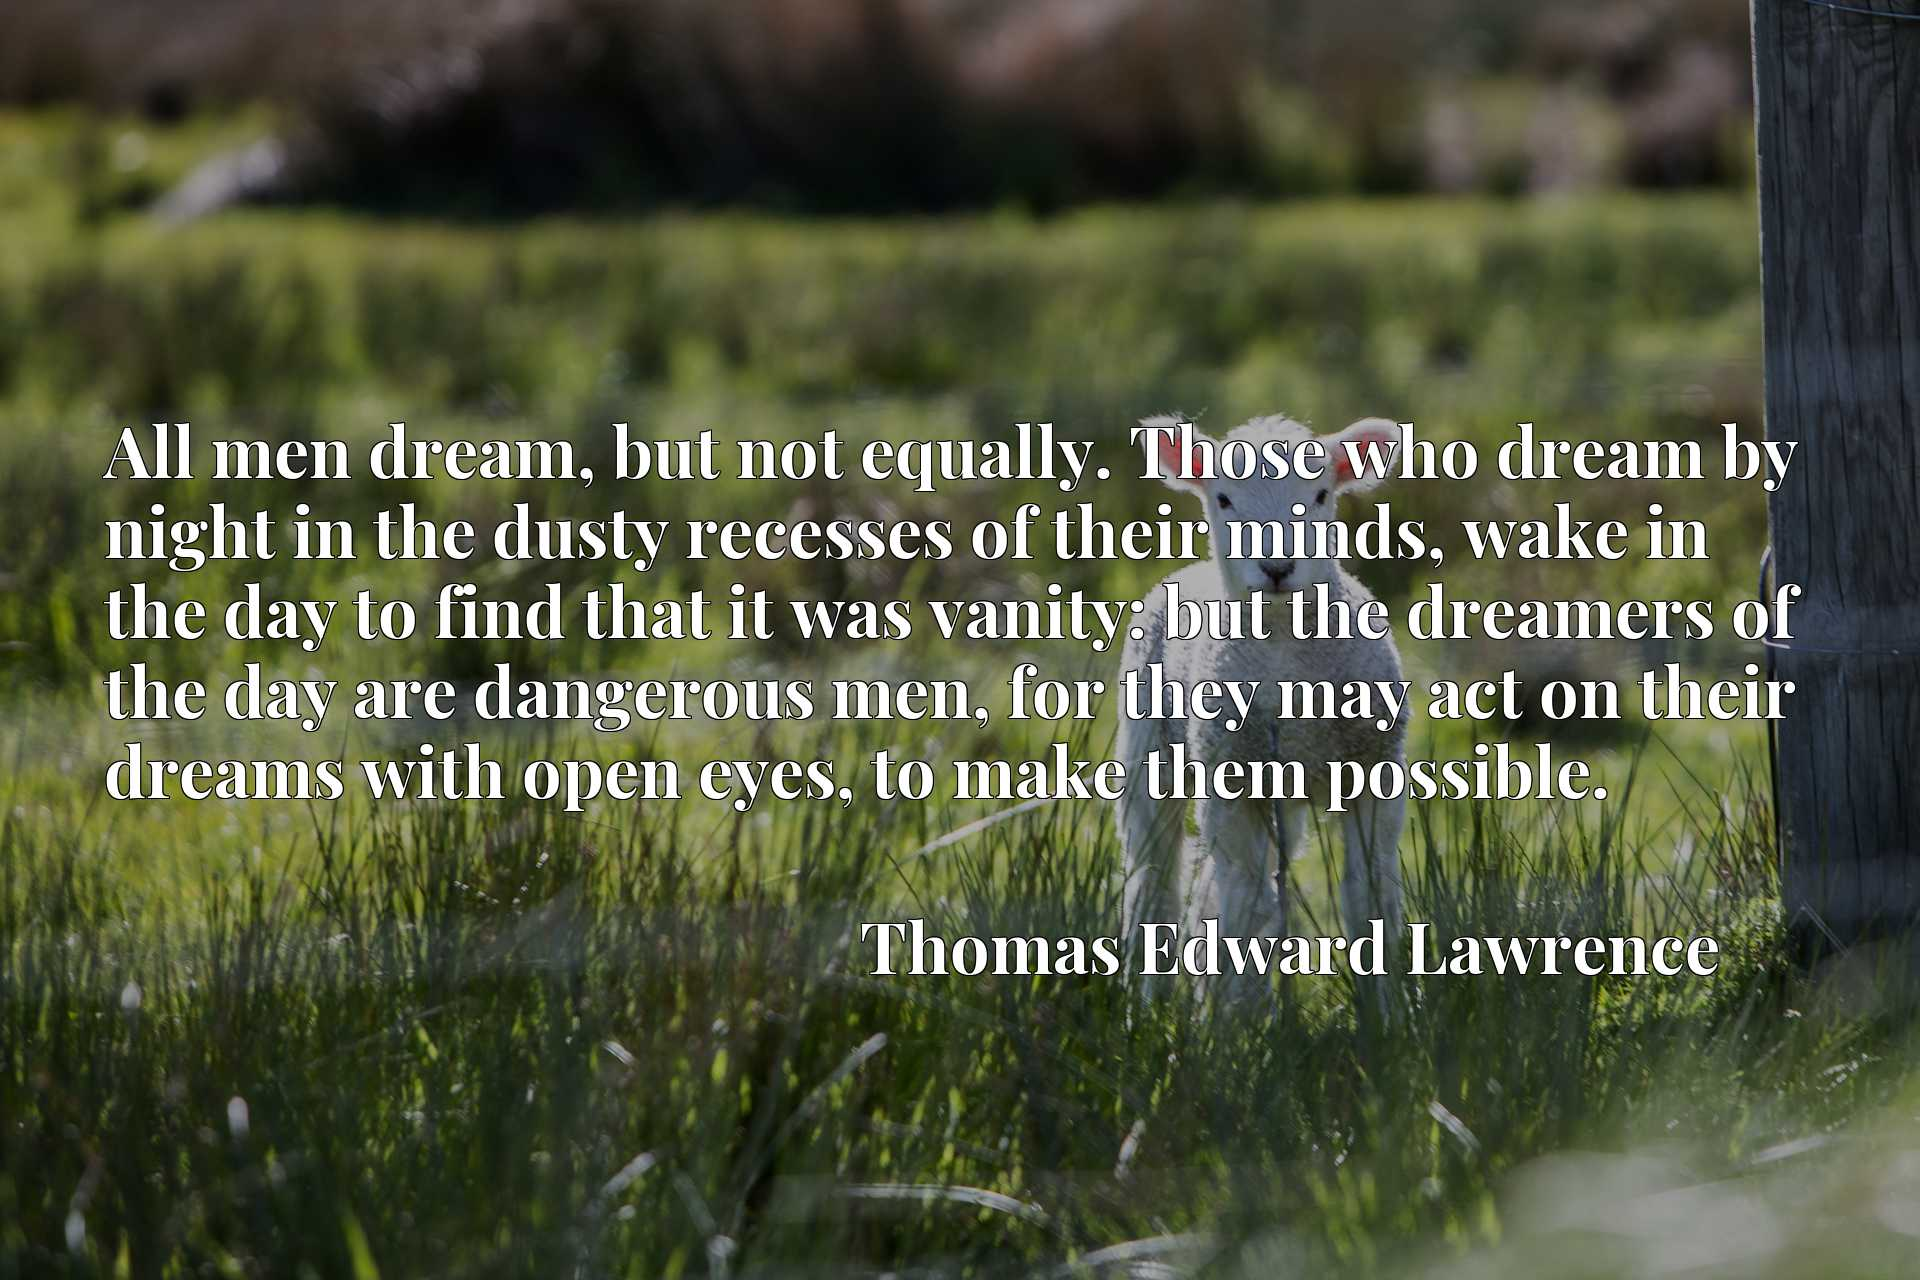 All men dream, but not equally. Those who dream by night in the dusty recesses of their minds, wake in the day to find that it was vanity: but the dreamers of the day are dangerous men, for they may act on their dreams with open eyes, to make them possible.